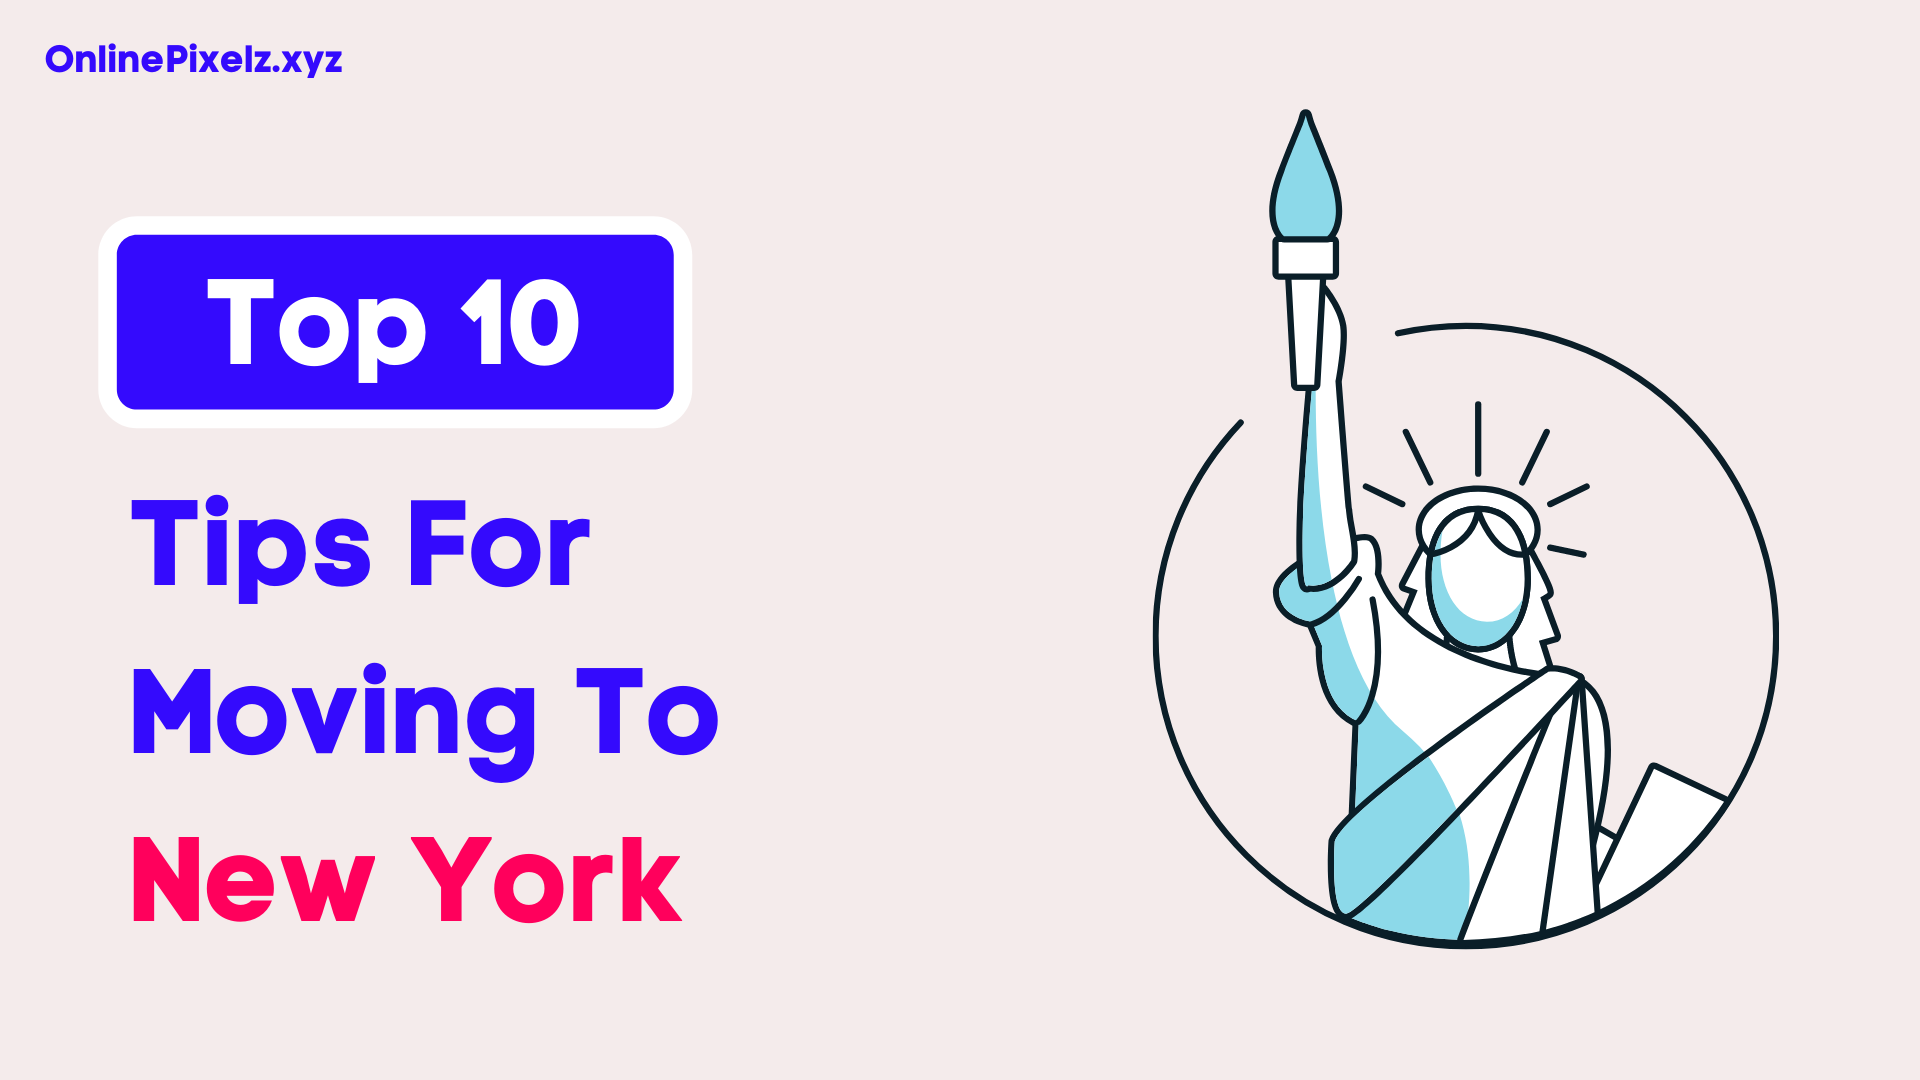 Tips For Moving To New York